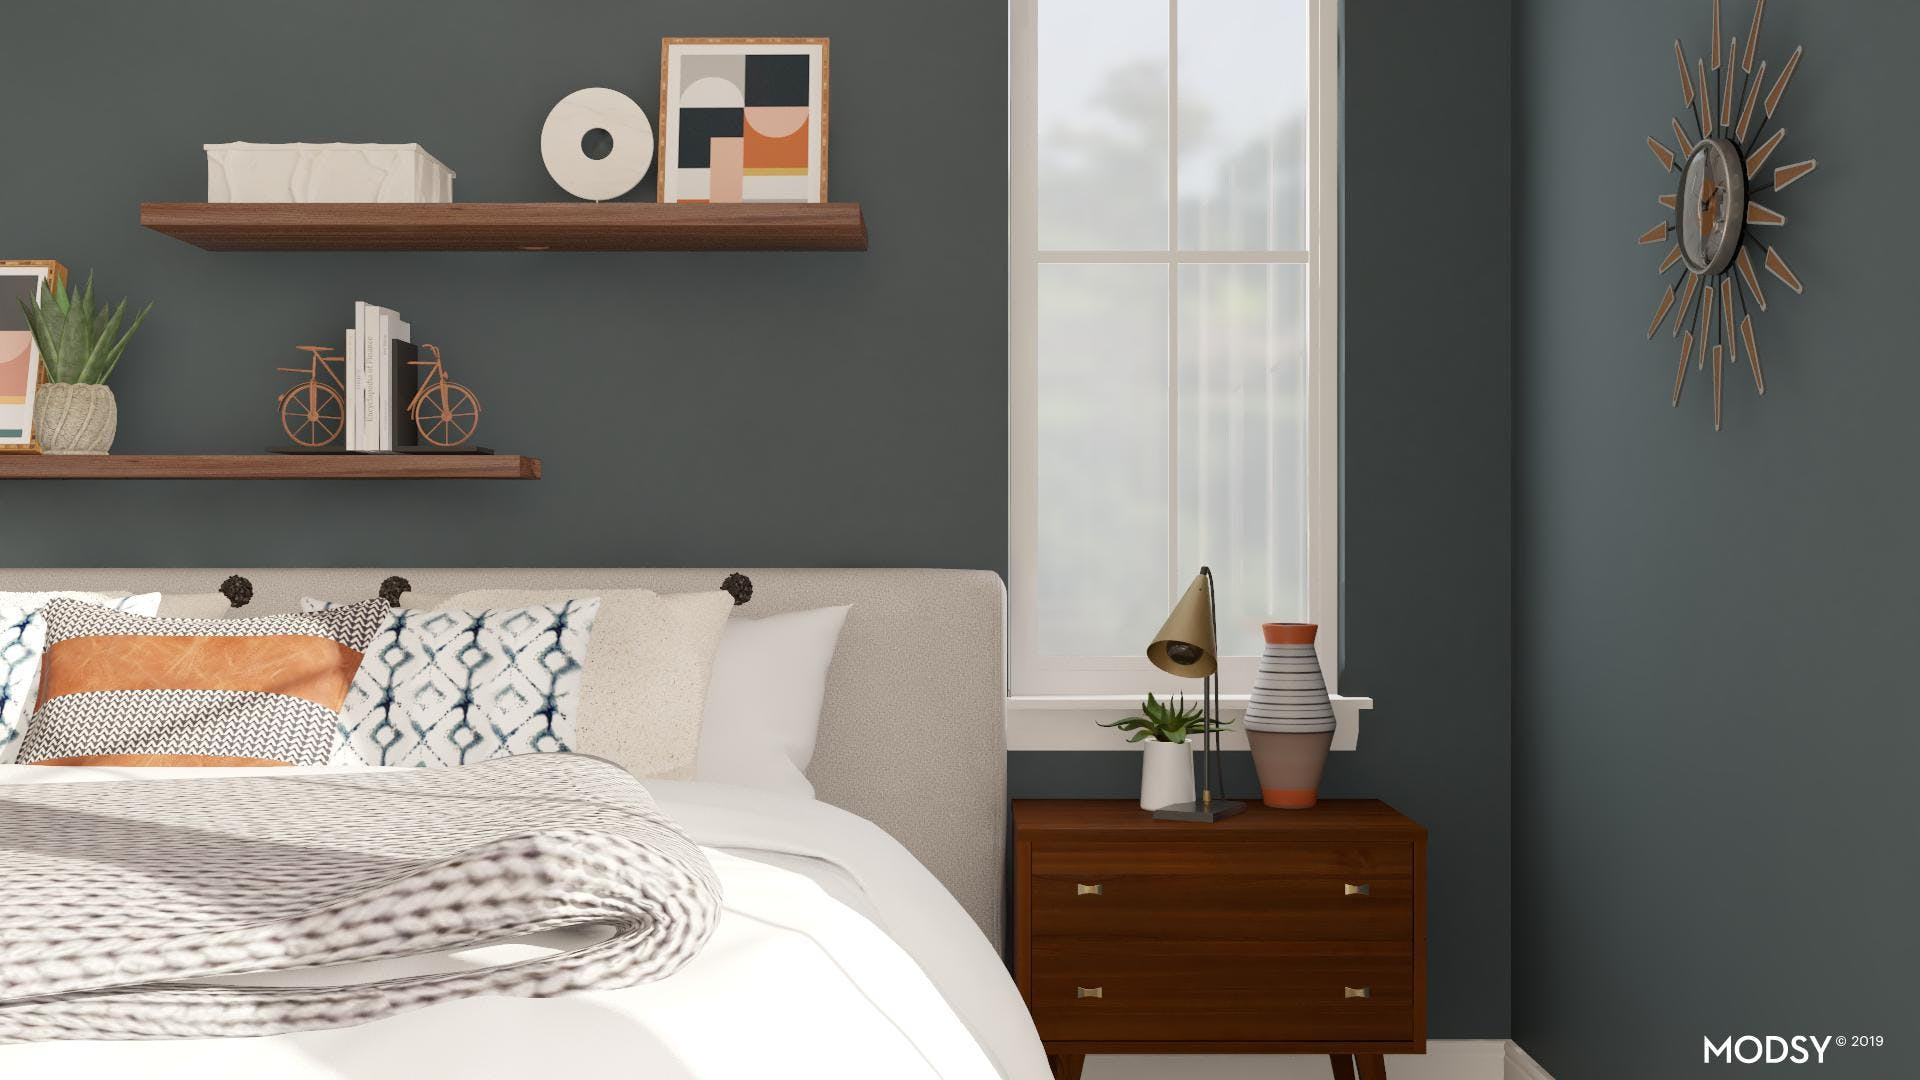 Fun and space-friendly storage options in a mid-century bedroom